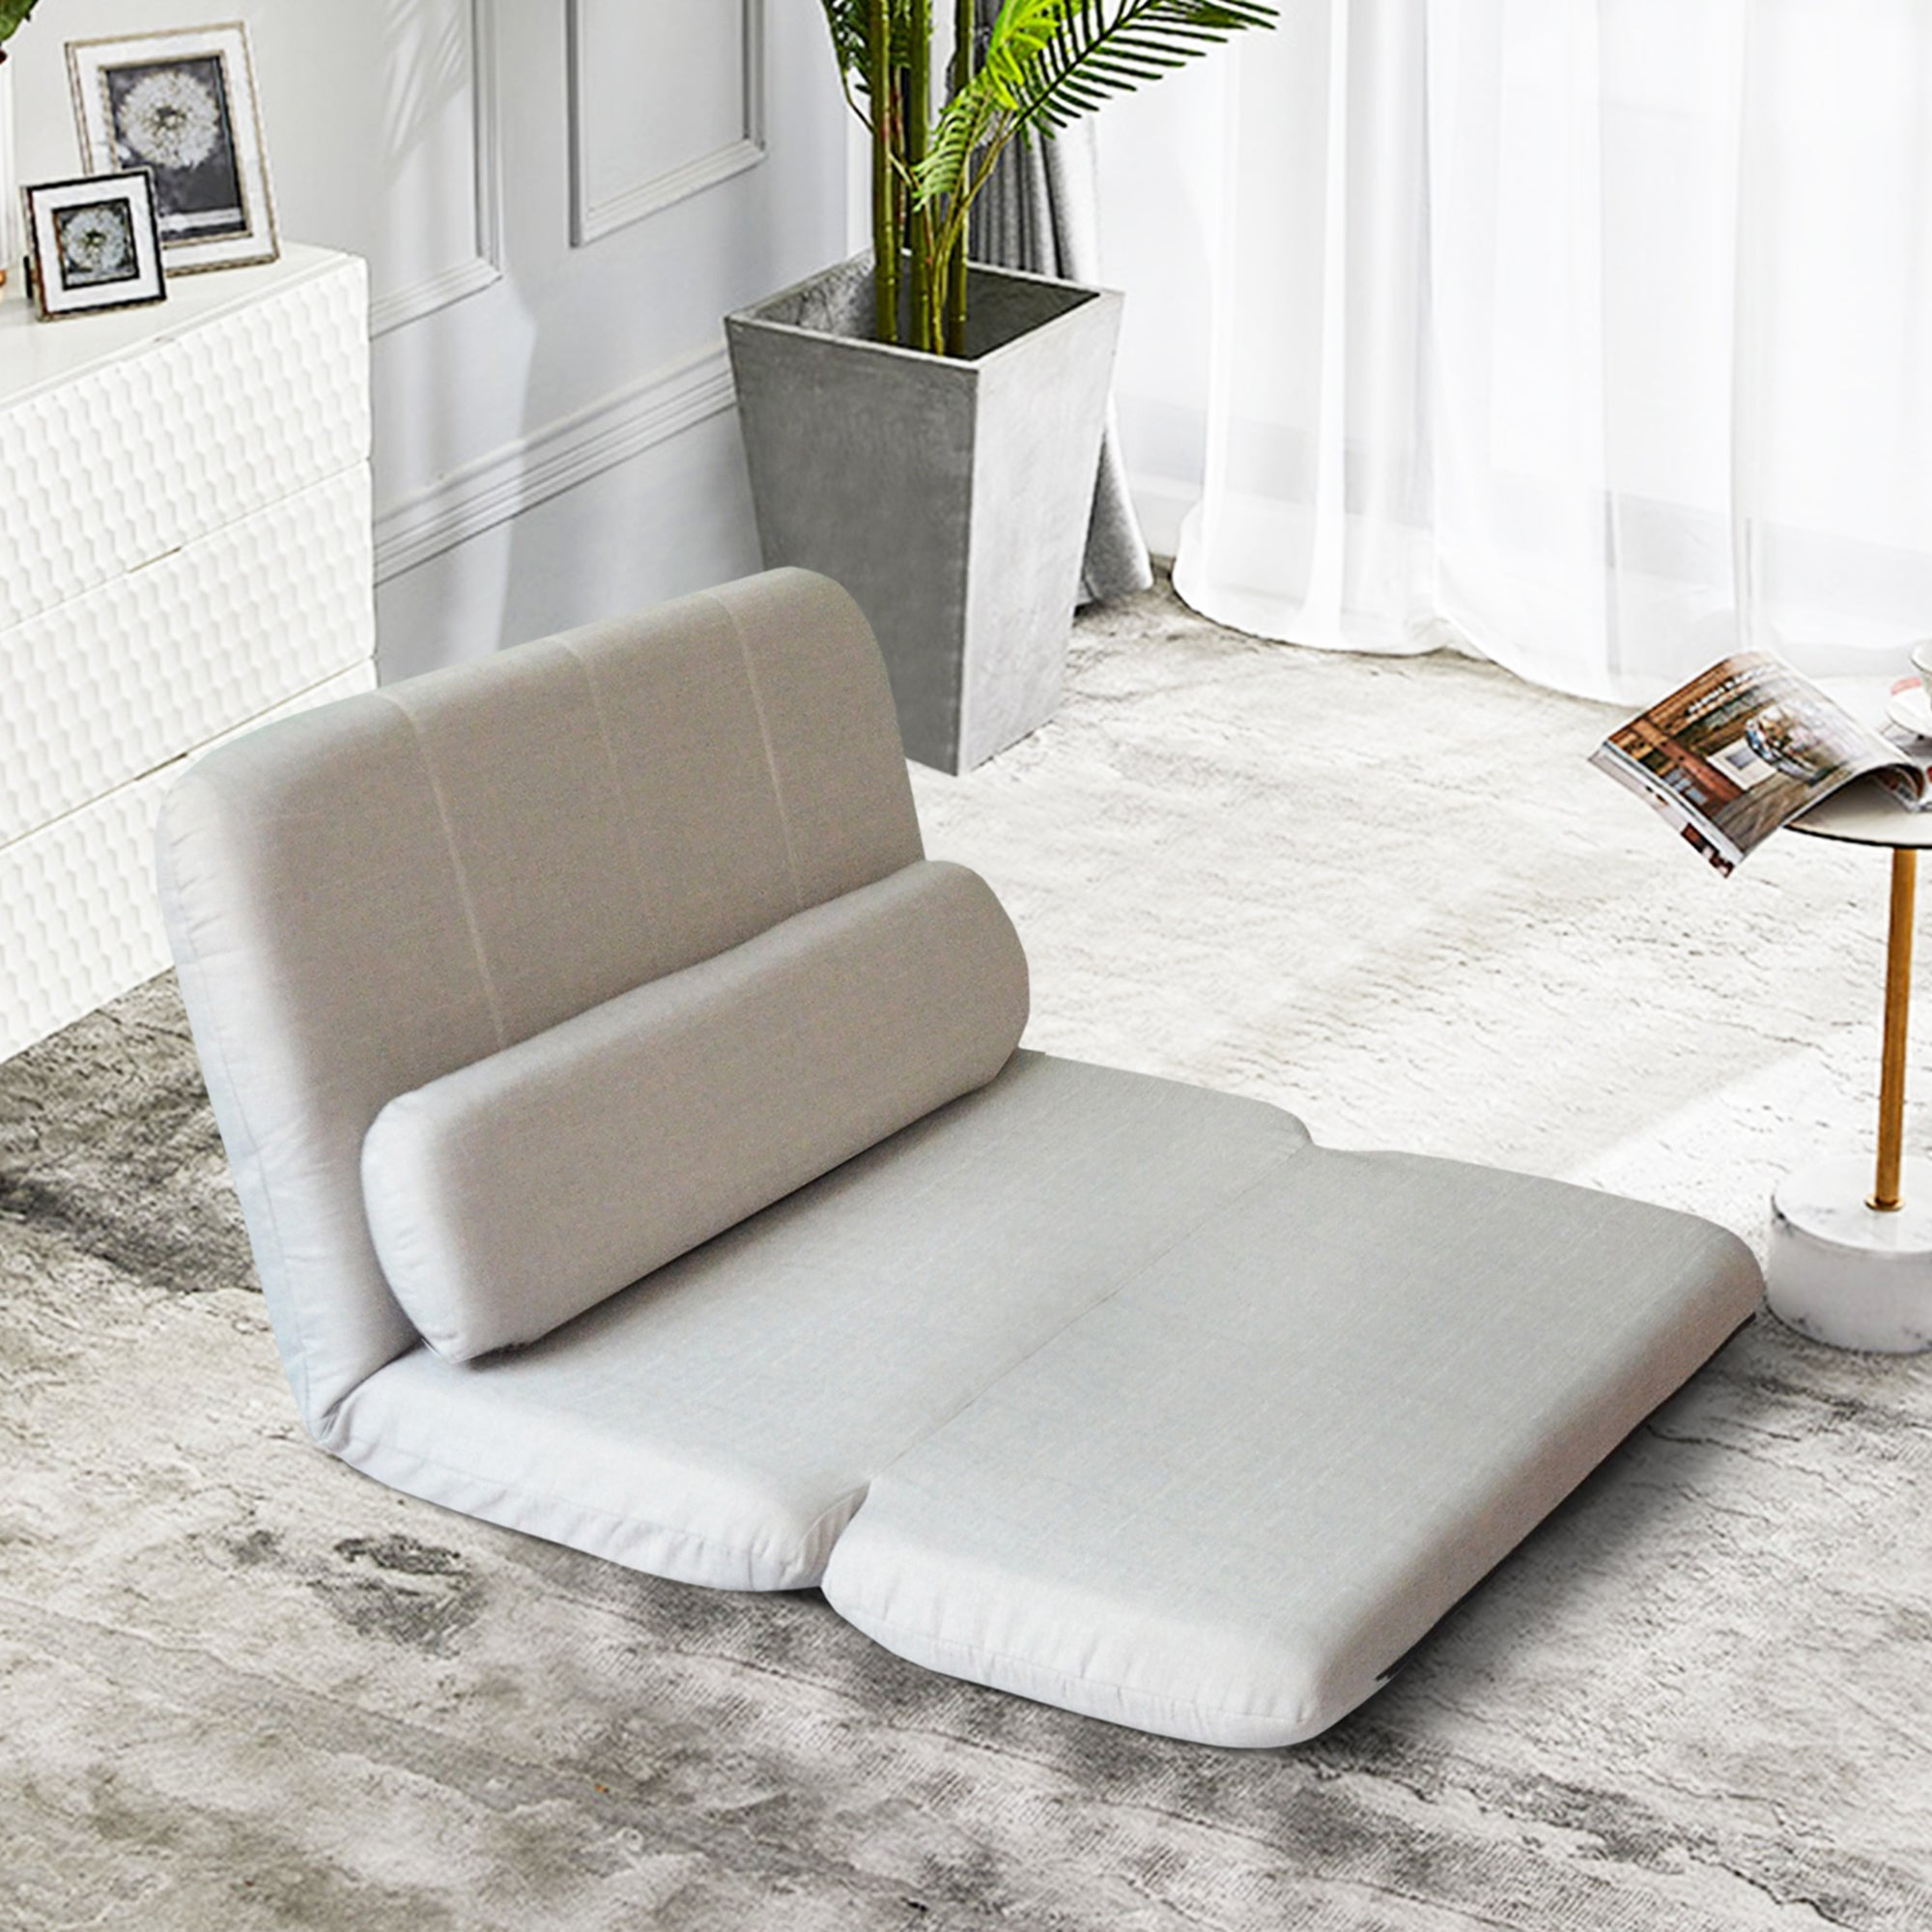 Foldable Sofa Bed Rest Room Floor